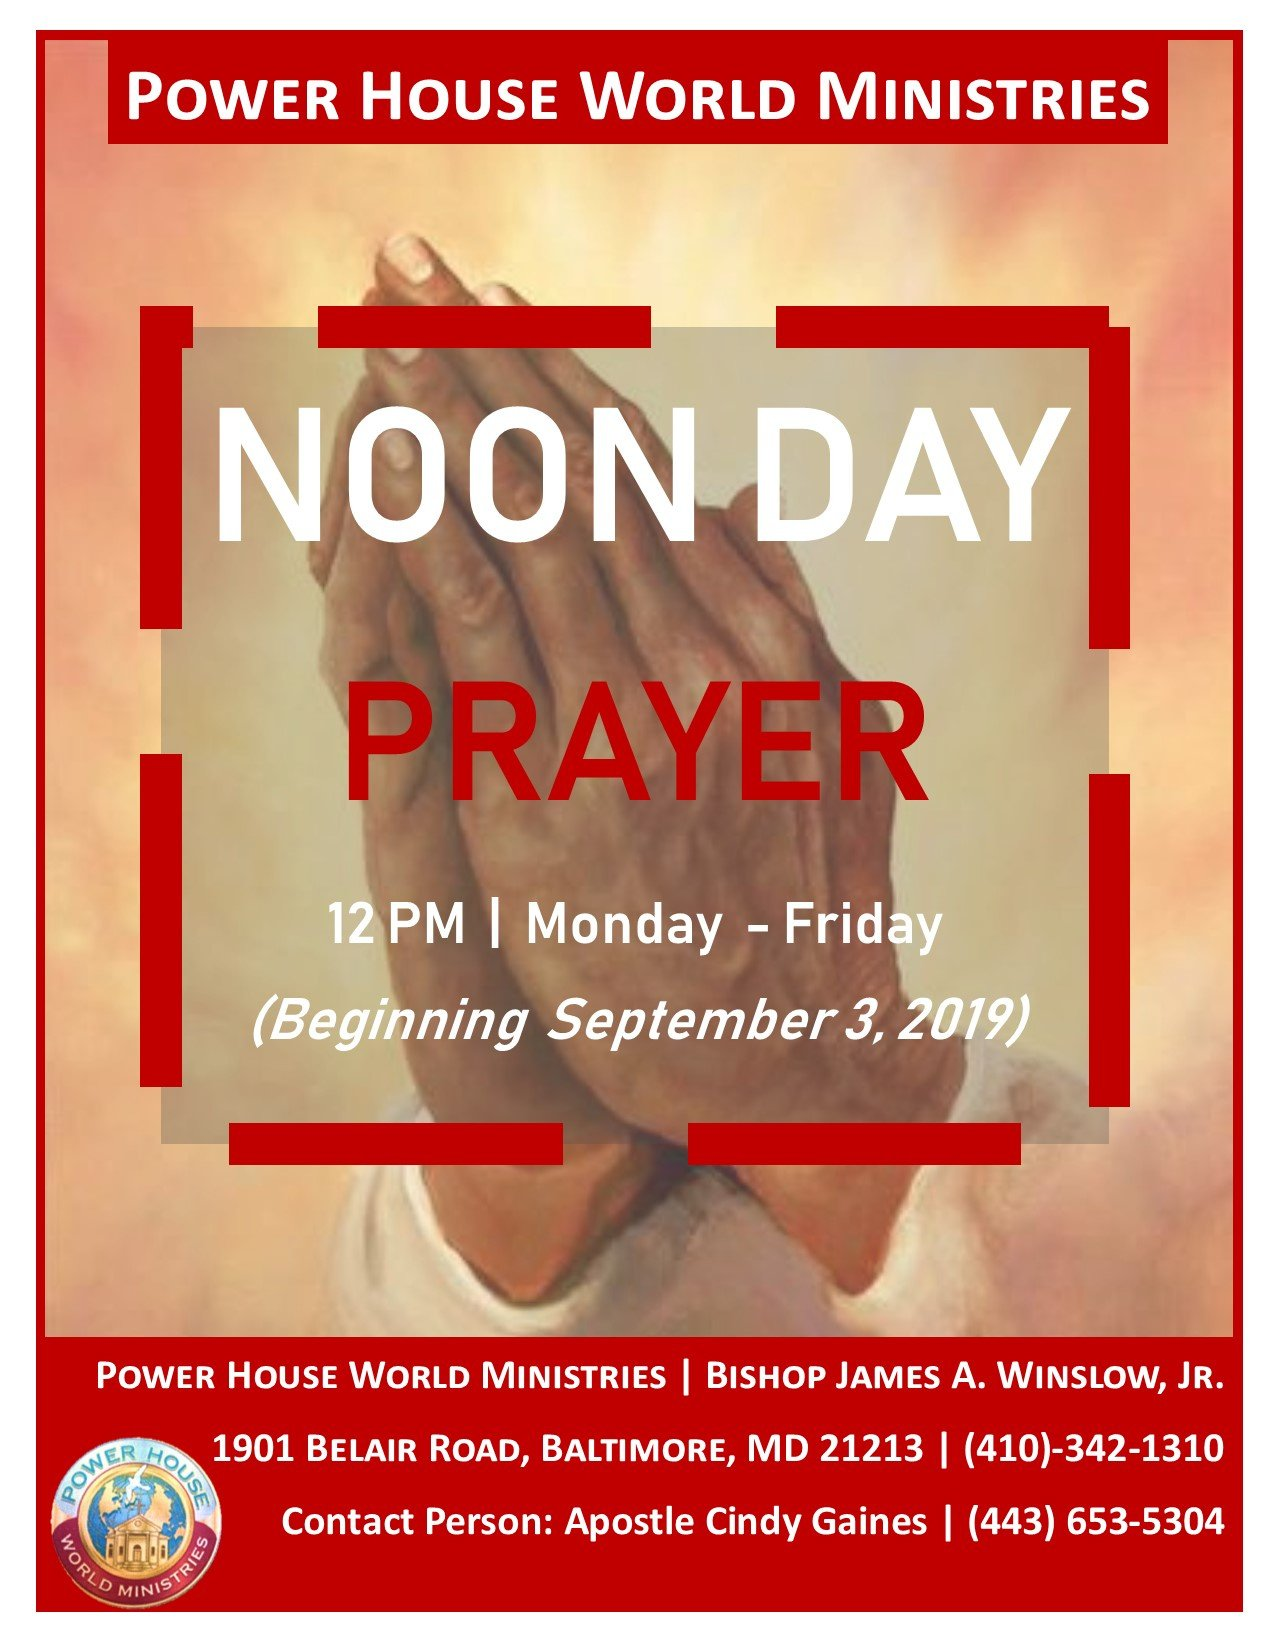 PHWM Noon Day Prayer Flyer